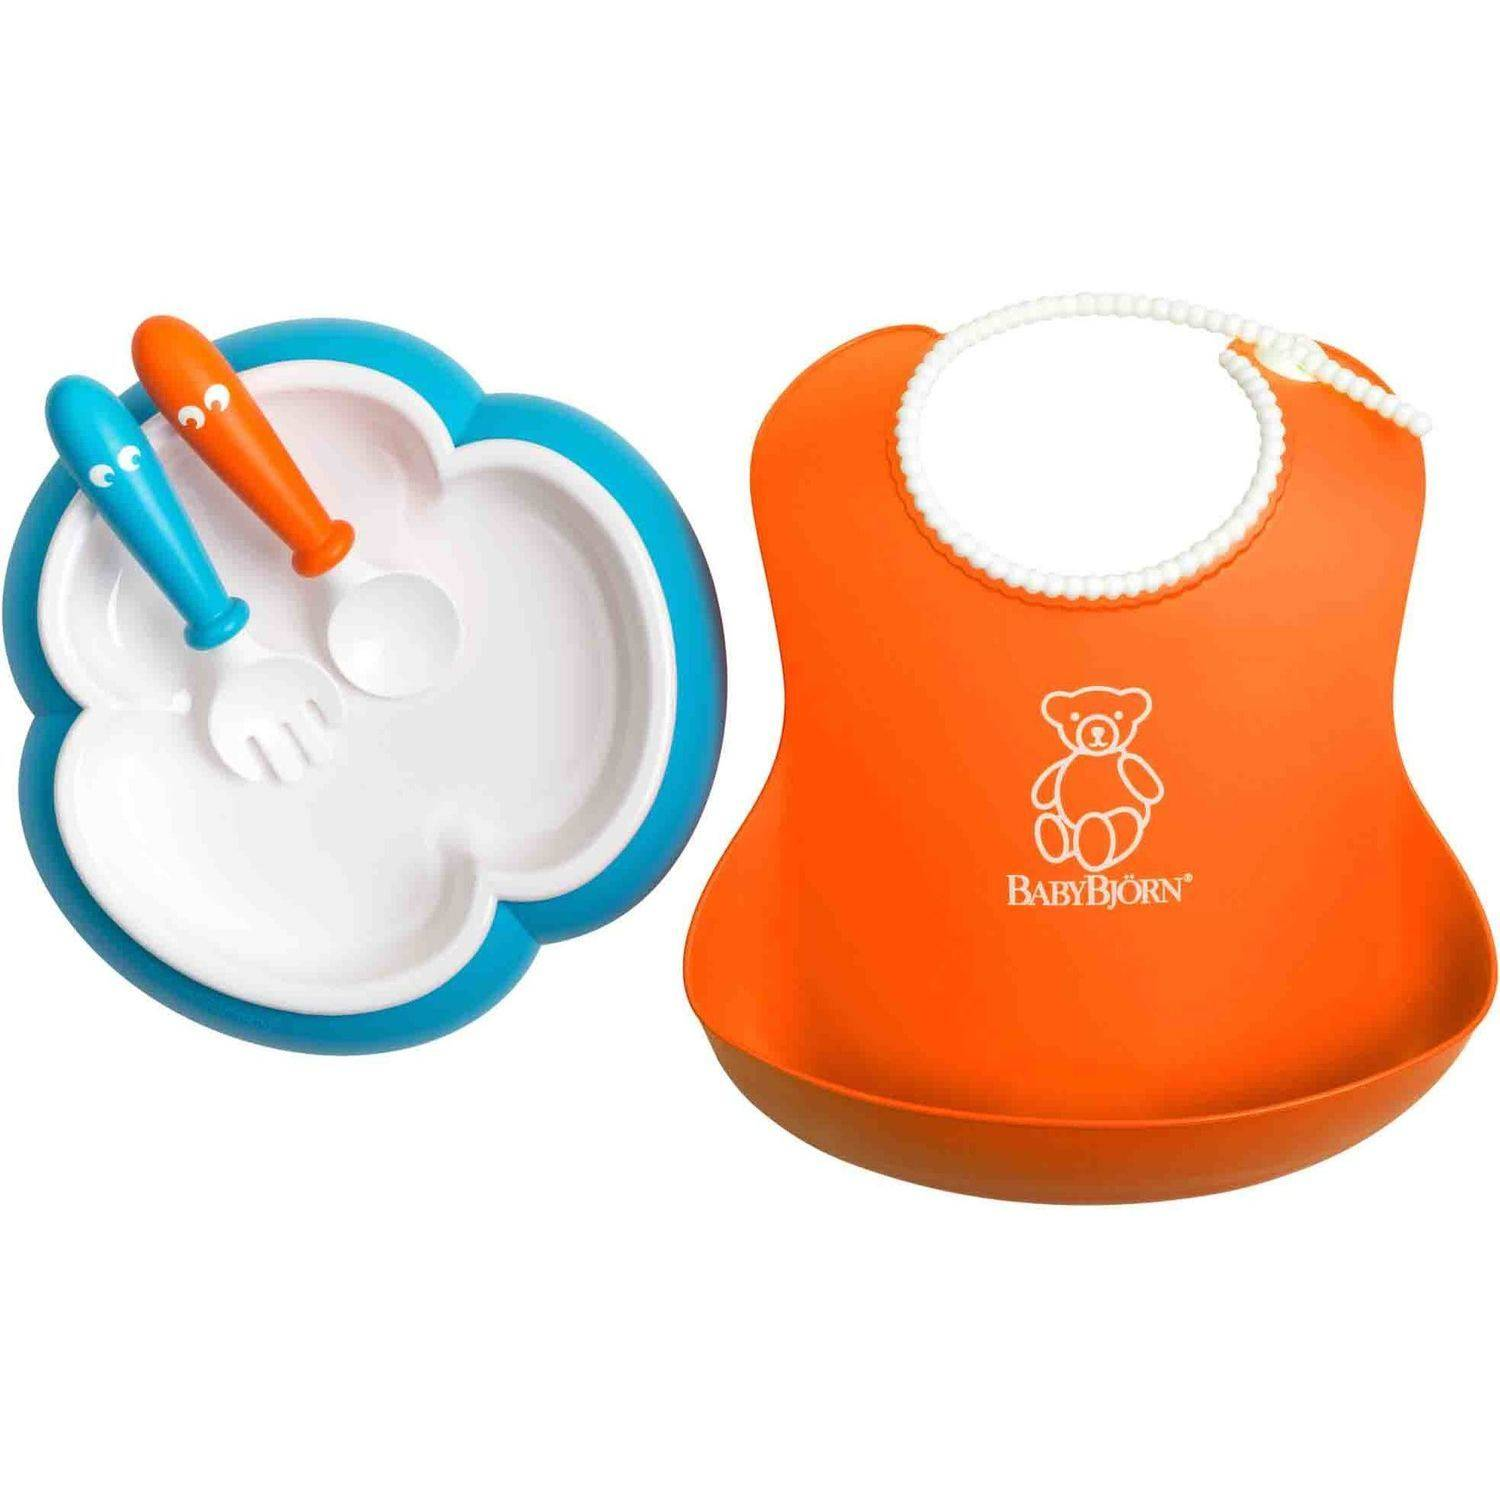 BabyBjorn Baby Feeding Set, Orange Soft Bib, Turquoise Plate, Orange Spoon and Turquoise Fork by Baby Swede